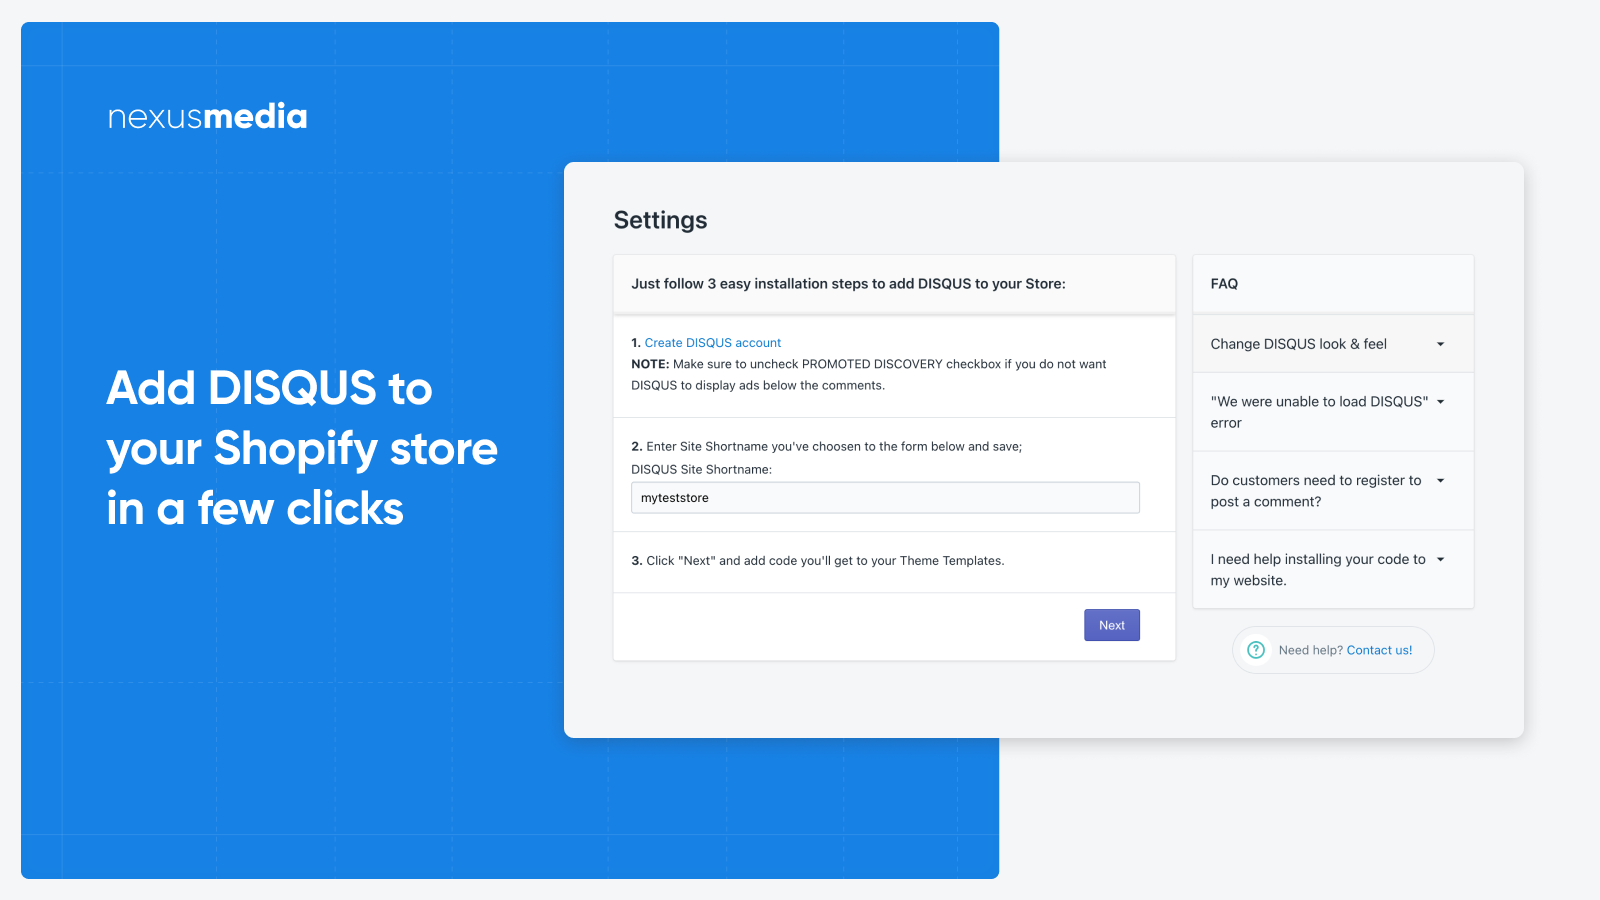 Add DISQUS to your Store in a few clicks